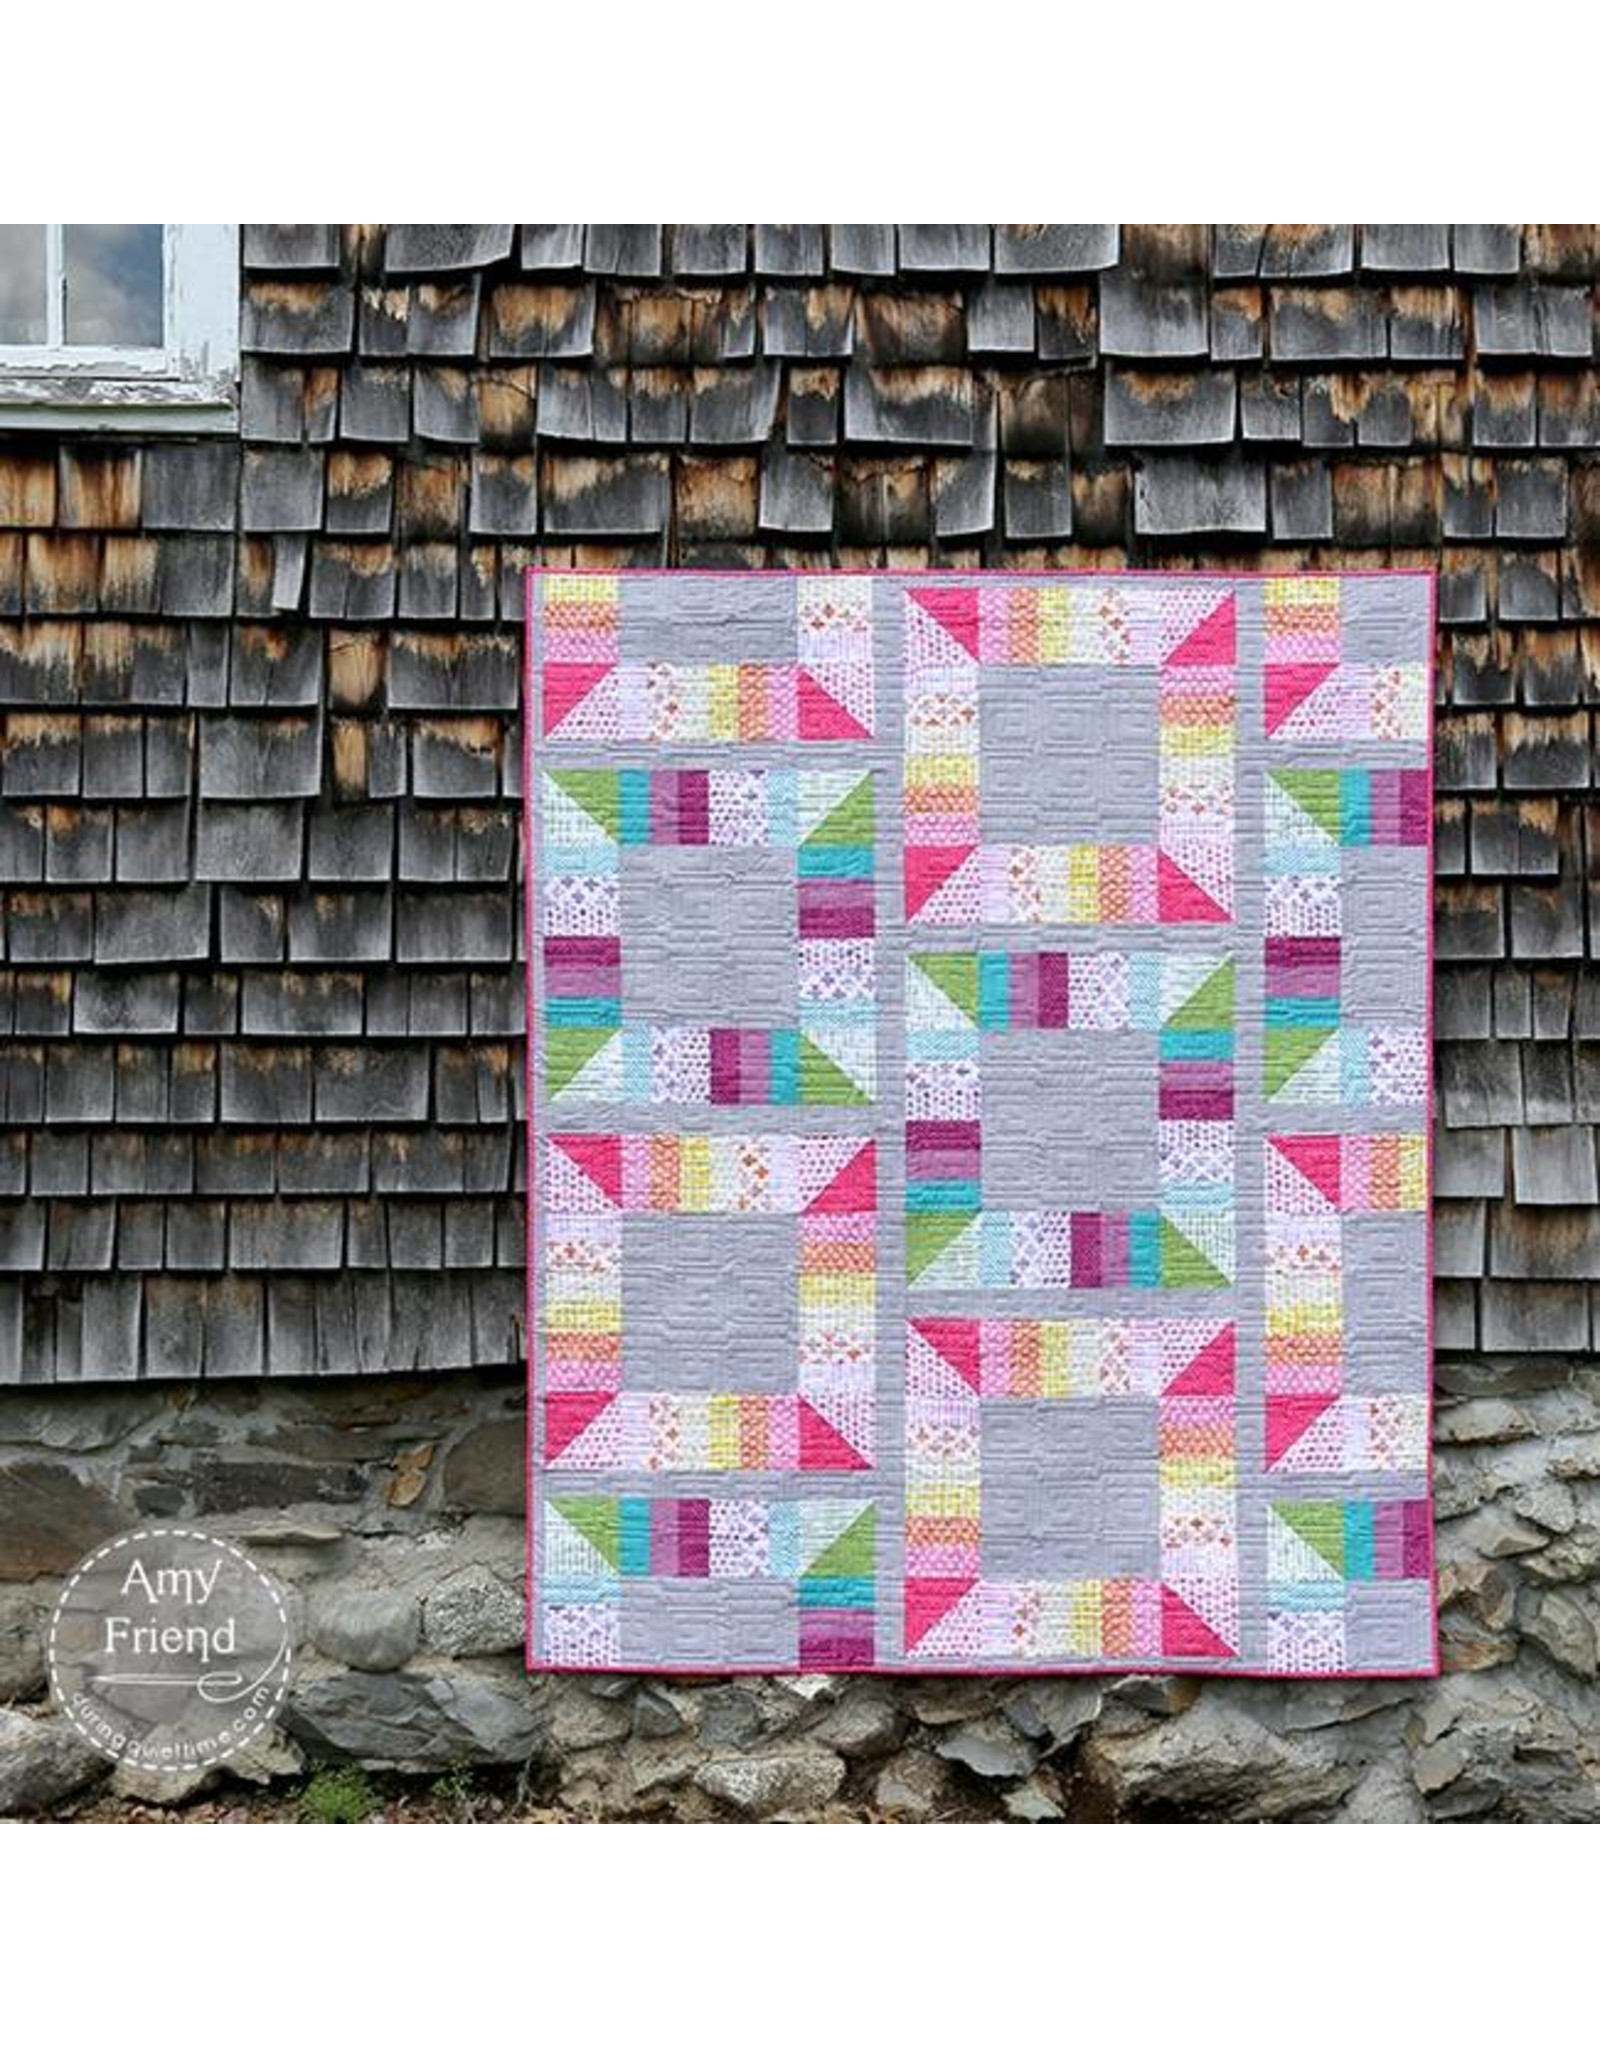 During Quiet Time Game Board Quilt